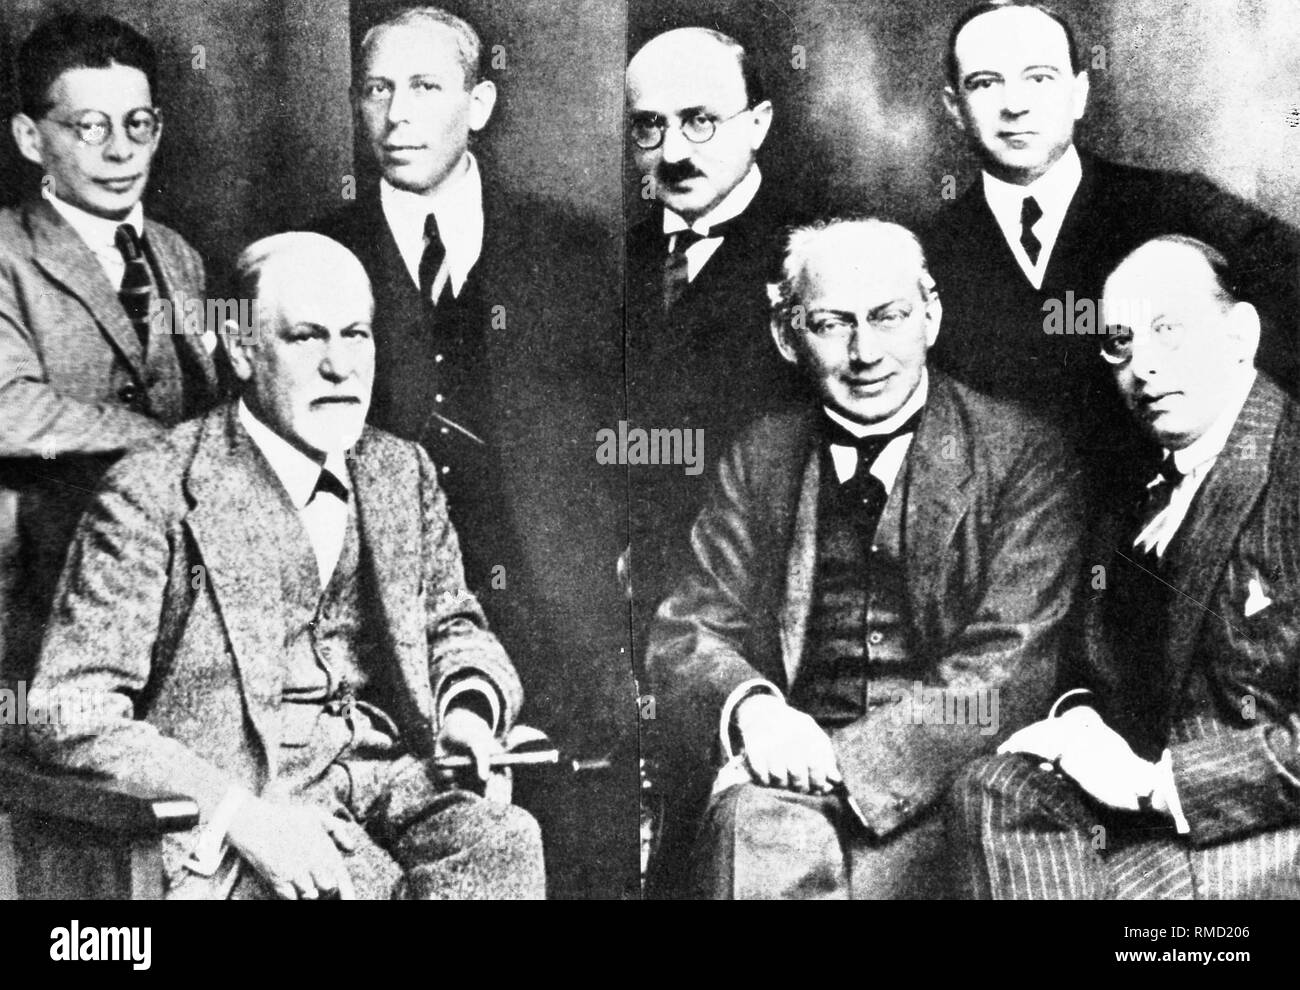 Sigmund Freud (right front) and the 'Secret Committee': Karl Abraham, (standing, second from the left), Max Eitingon (standing, second from the right), Sandor Ferenczi (sitting, second from the right), Ernest Jones ( standing, first from the right), Otto Rank (standing, first from left), Hans Sachs (sitting, first from right). - Stock Image